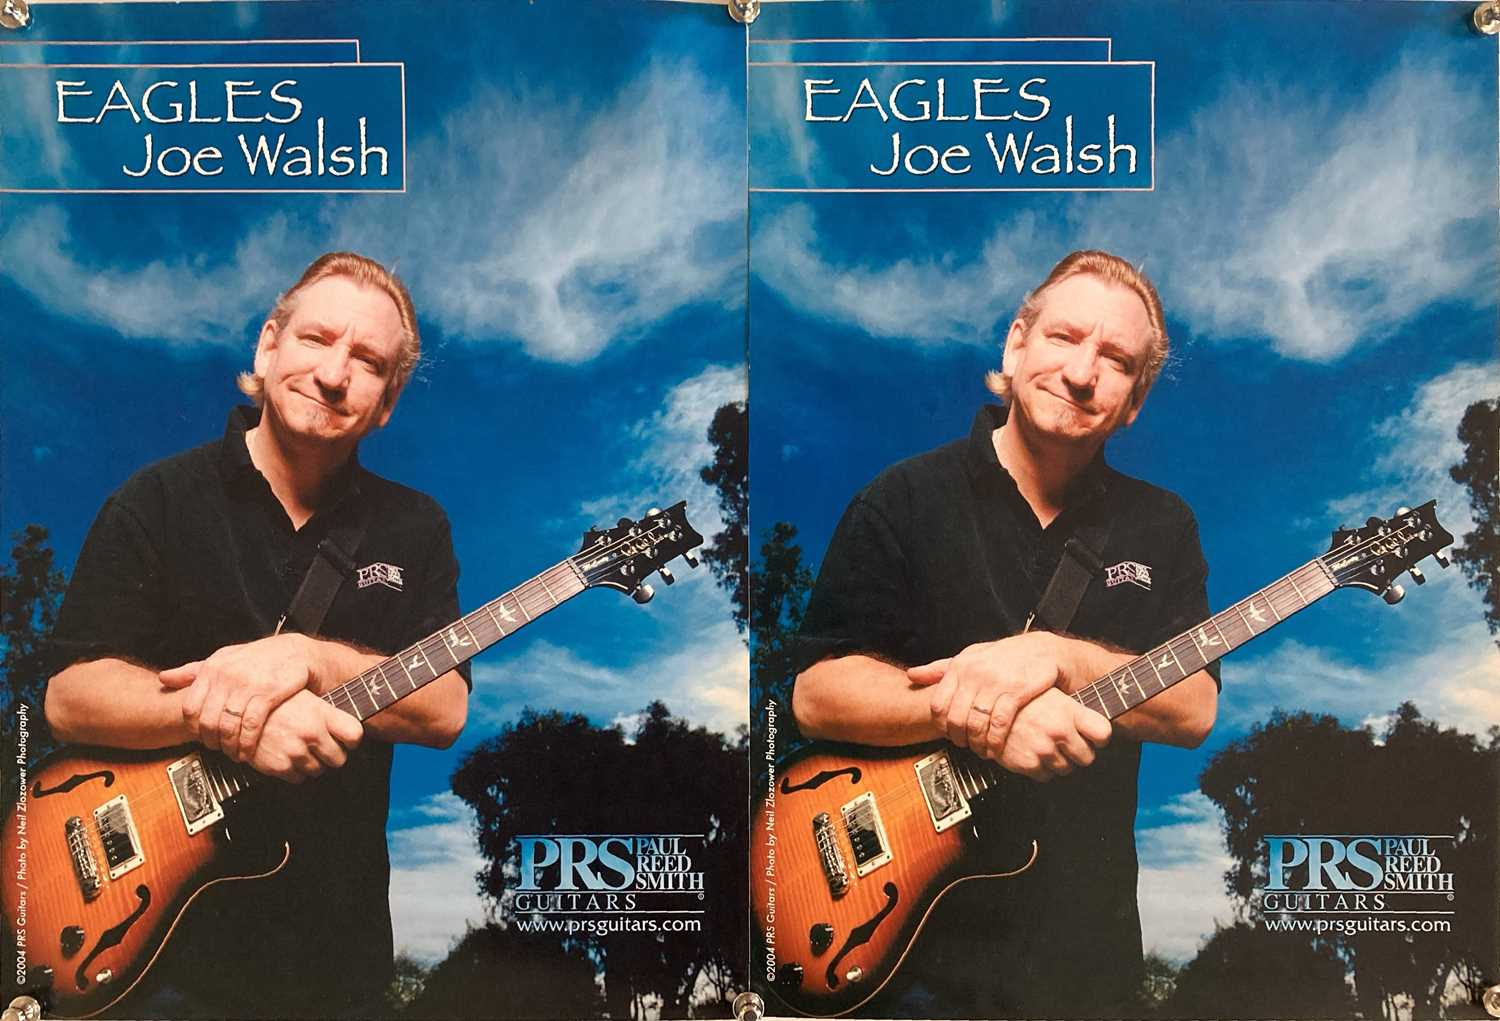 GUITAR PROMOTIONAL POSTERS. - Image 2 of 3